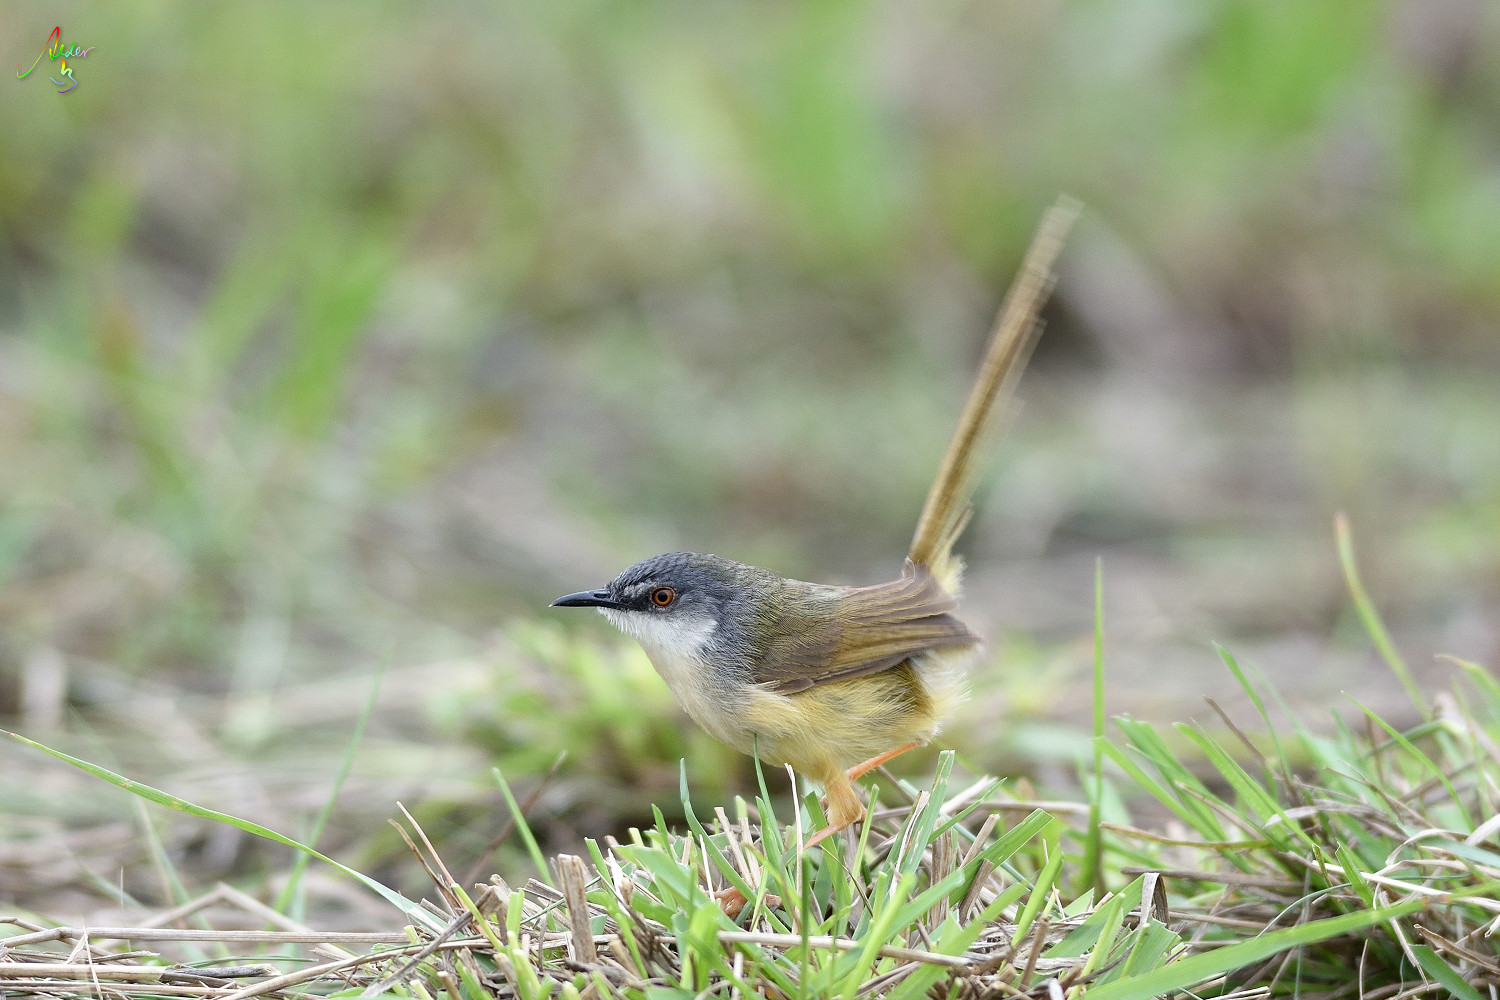 Yellow-bellied_Prinia_3496